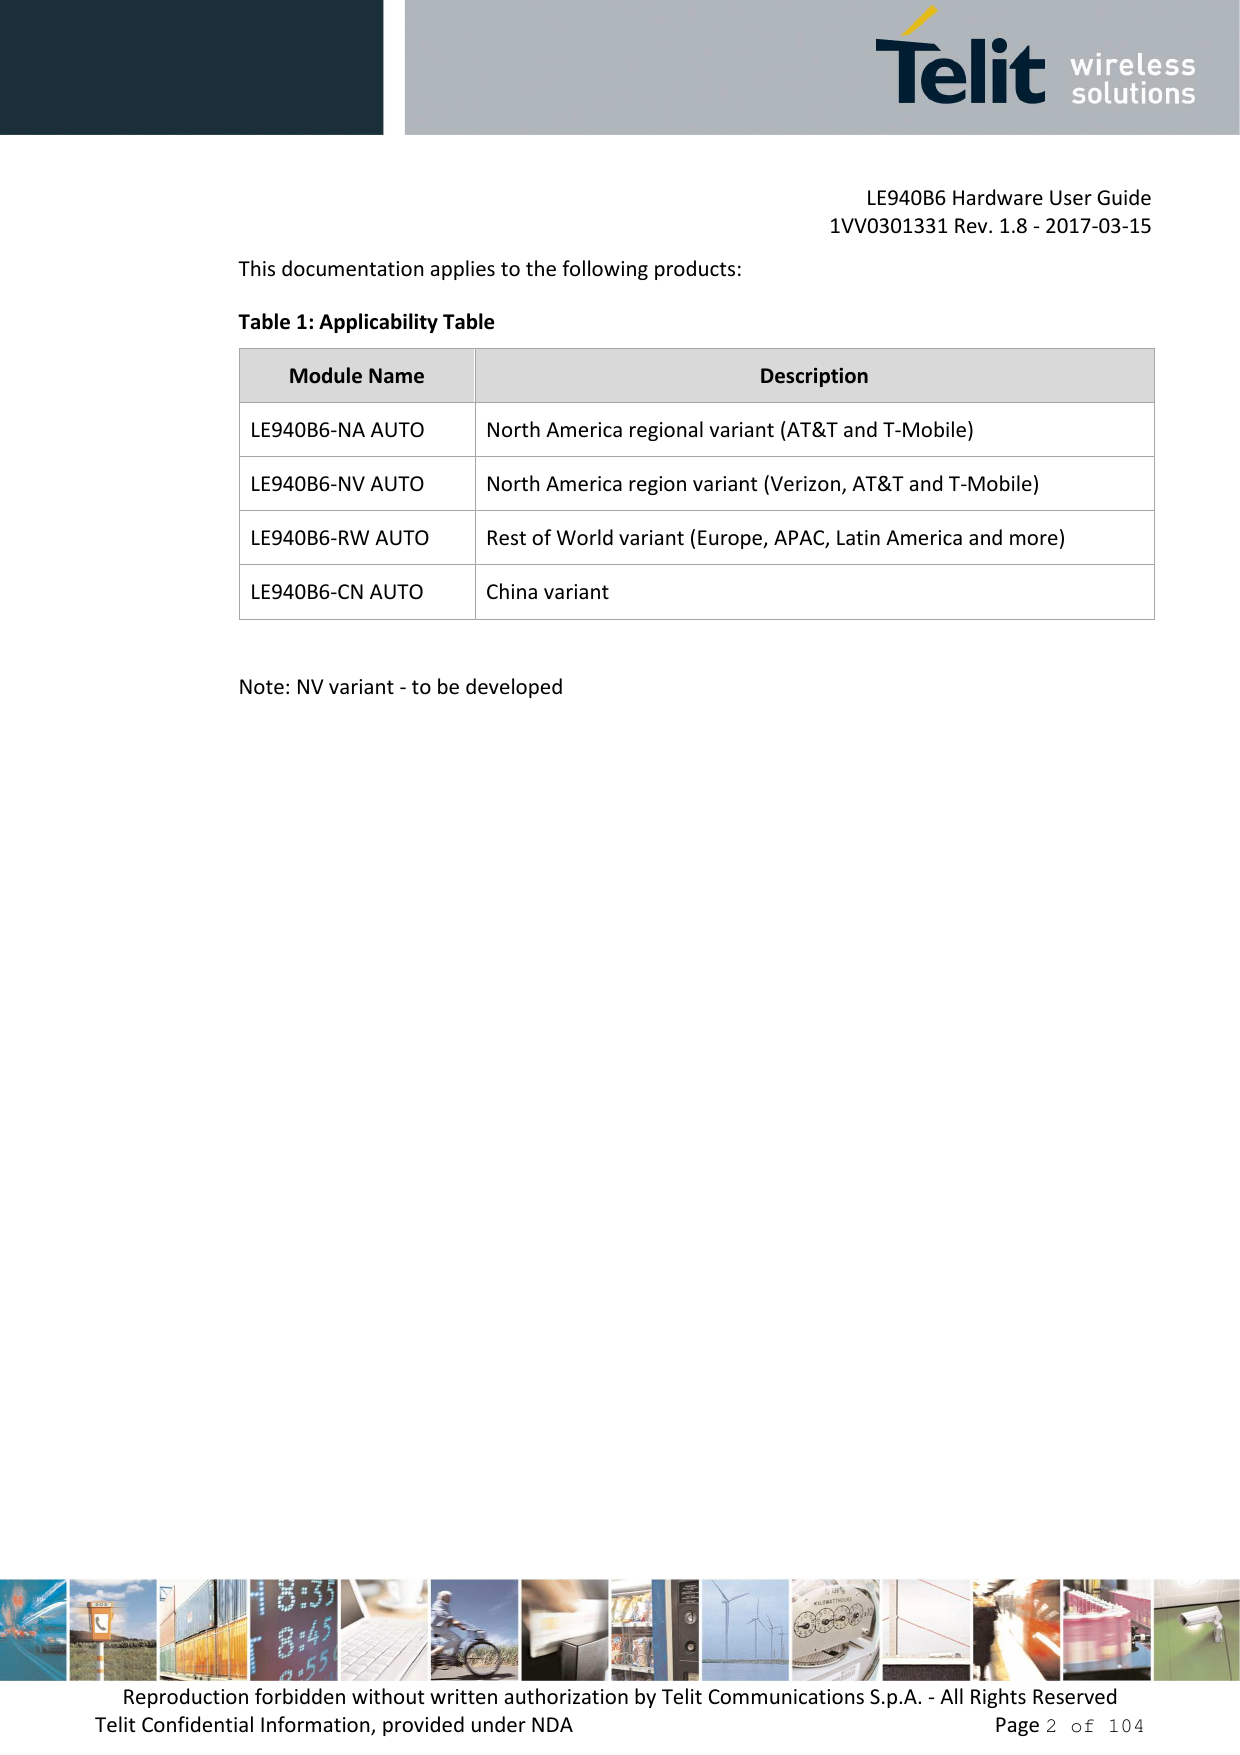 LE940B6 Hardware User Guide     1VV0301331 Rev. 1.8 - 2017-03-15 Reproduction forbidden without written authorization by Telit Communications S.p.A. - All Rights Reserved Telit Confidential Information, provided under NDA                 Page 2 of 104 This documentation applies to the following products: Table 1: Applicability Table Module Name  Description LE940B6-NA AUTO  North America regional variant (AT&T and T-Mobile) LE940B6-NV AUTO  North America region variant (Verizon, AT&T and T-Mobile) LE940B6-RW AUTO  Rest of World variant (Europe, APAC, Latin America and more) LE940B6-CN AUTO  China variant  Note: NV variant - to be developed